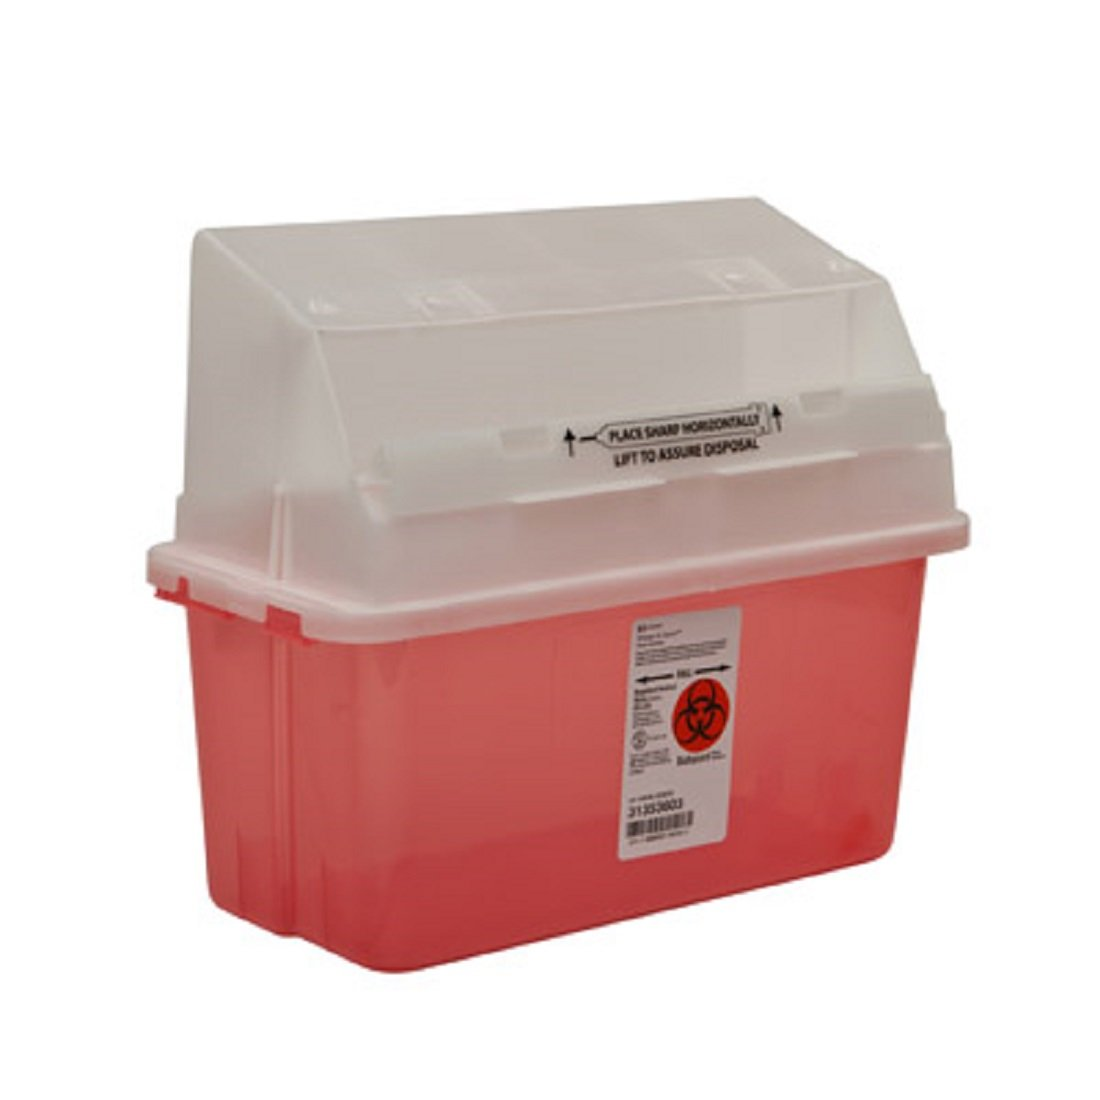 Kendall Gatorguard Jr Sharps Container 5 Quart Red - Model 31353603